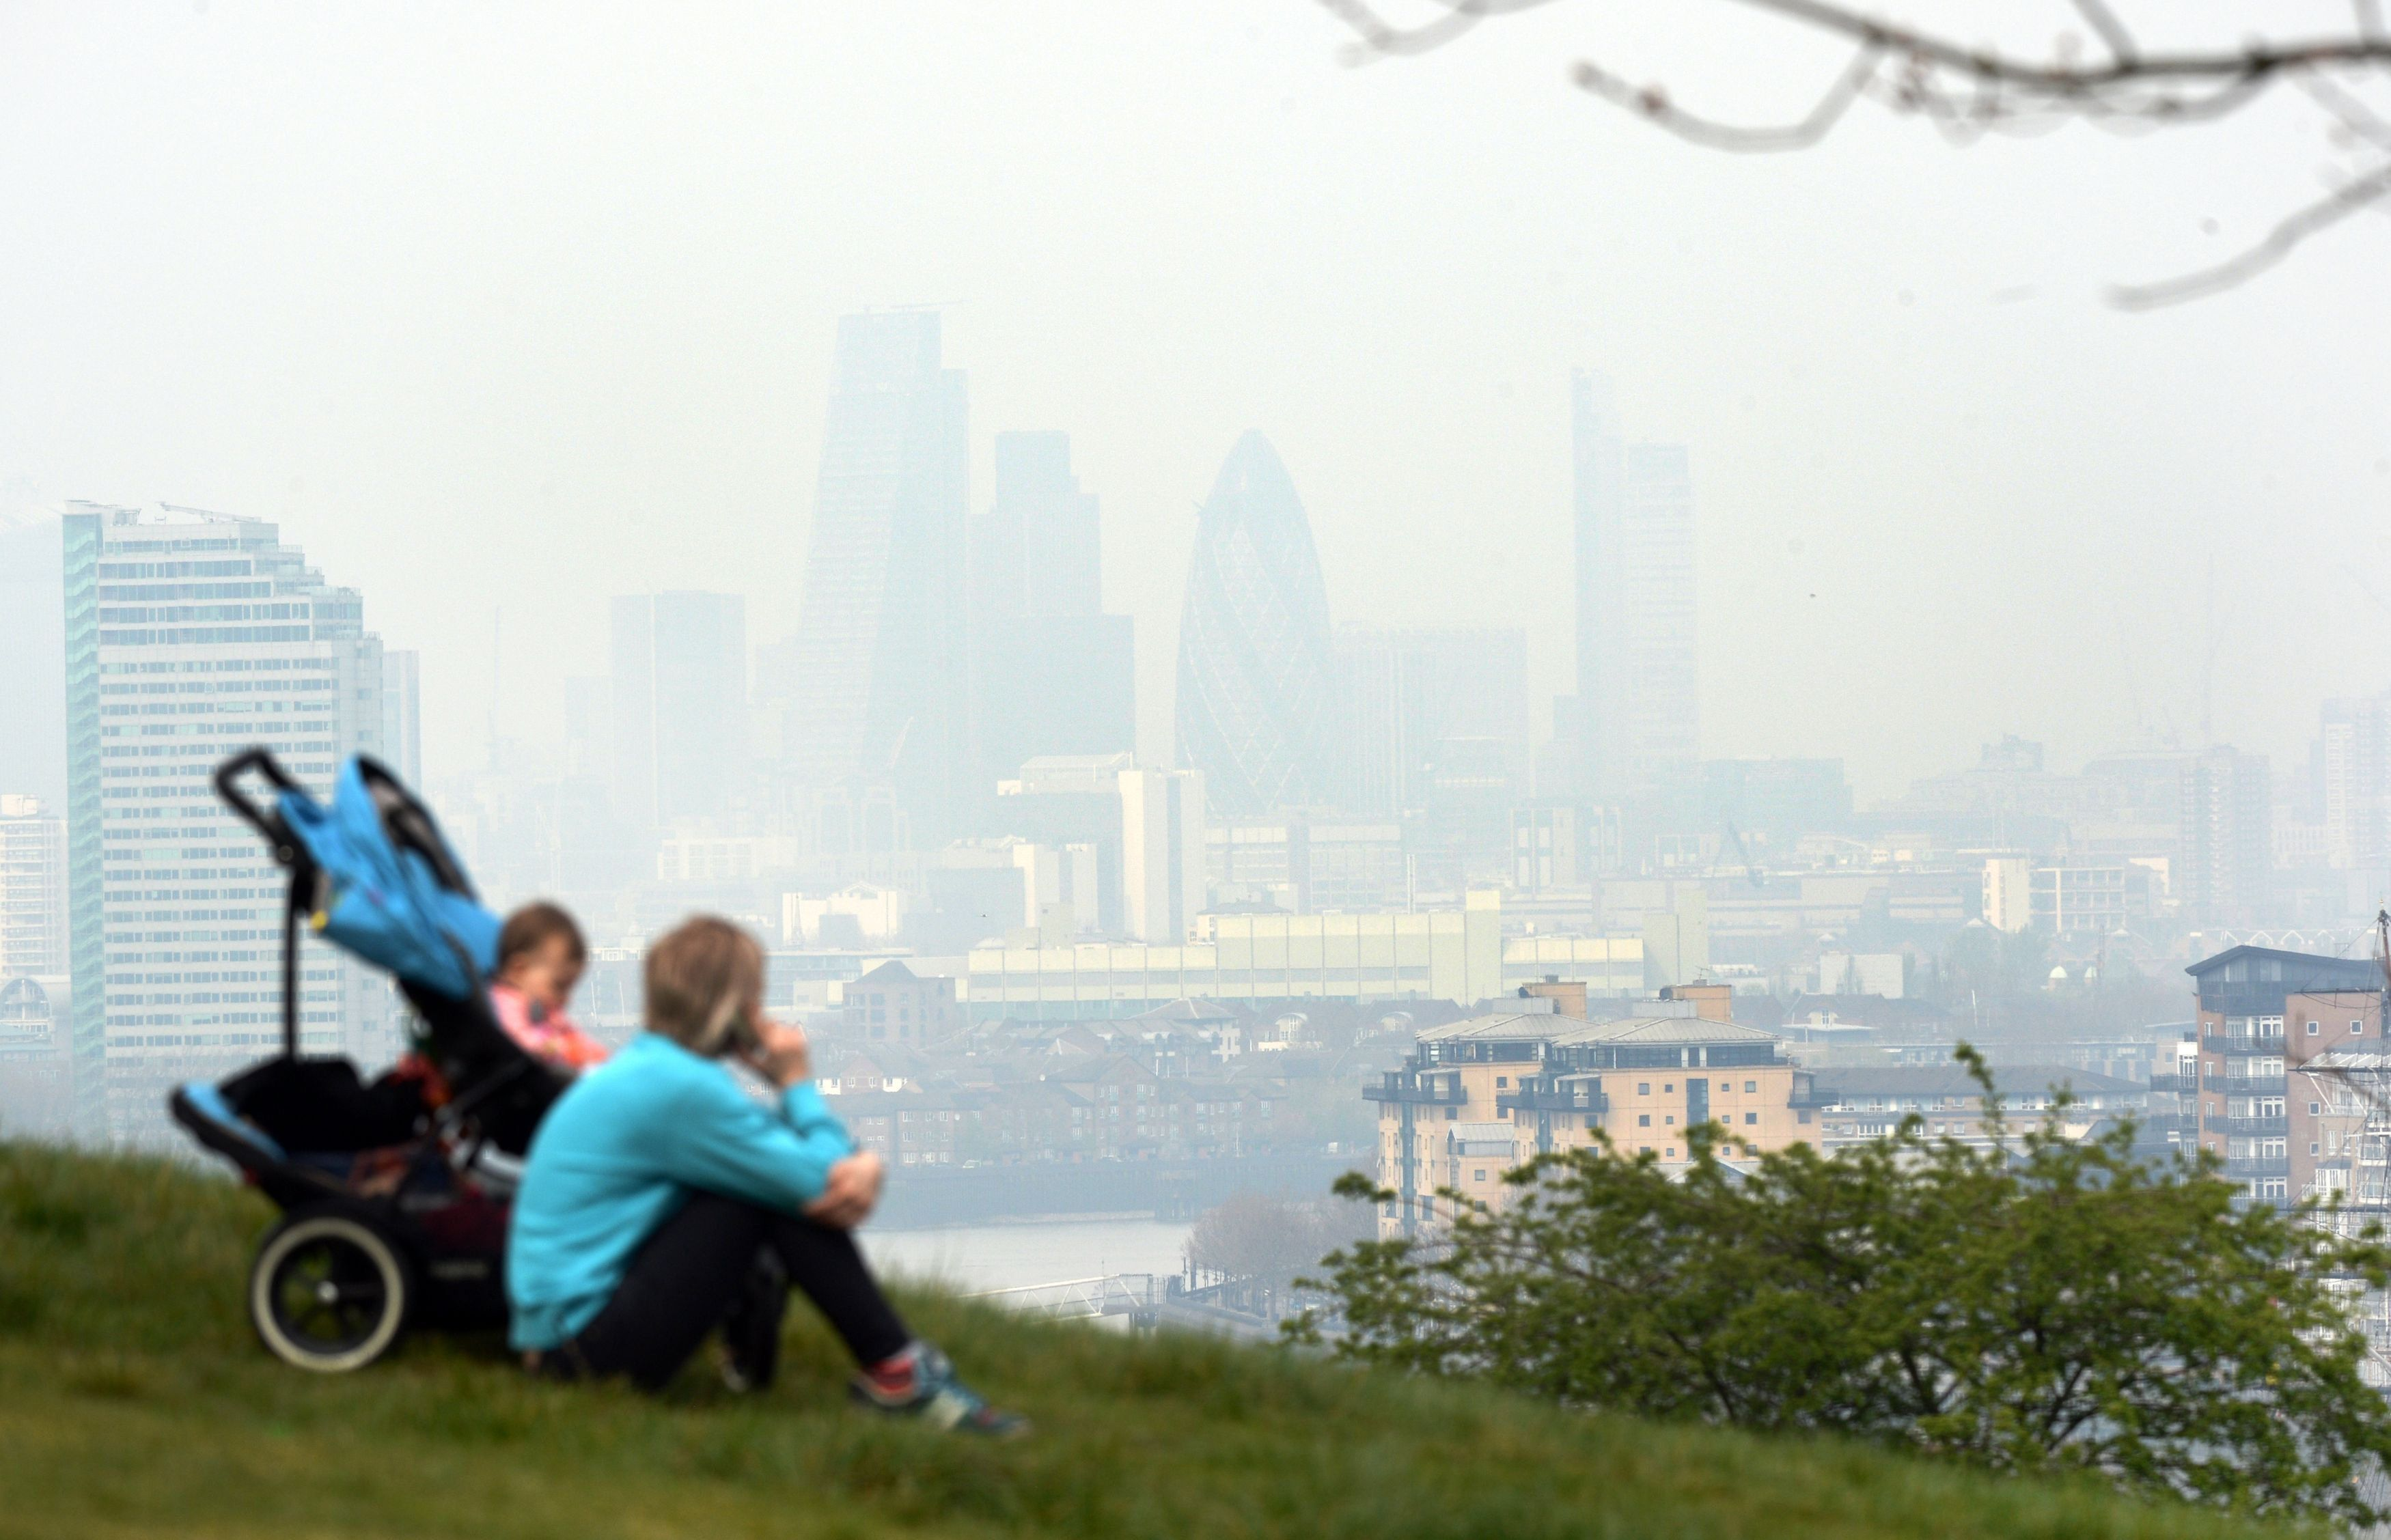 Ministers must cut air pollution in dozens of cities, judge rules